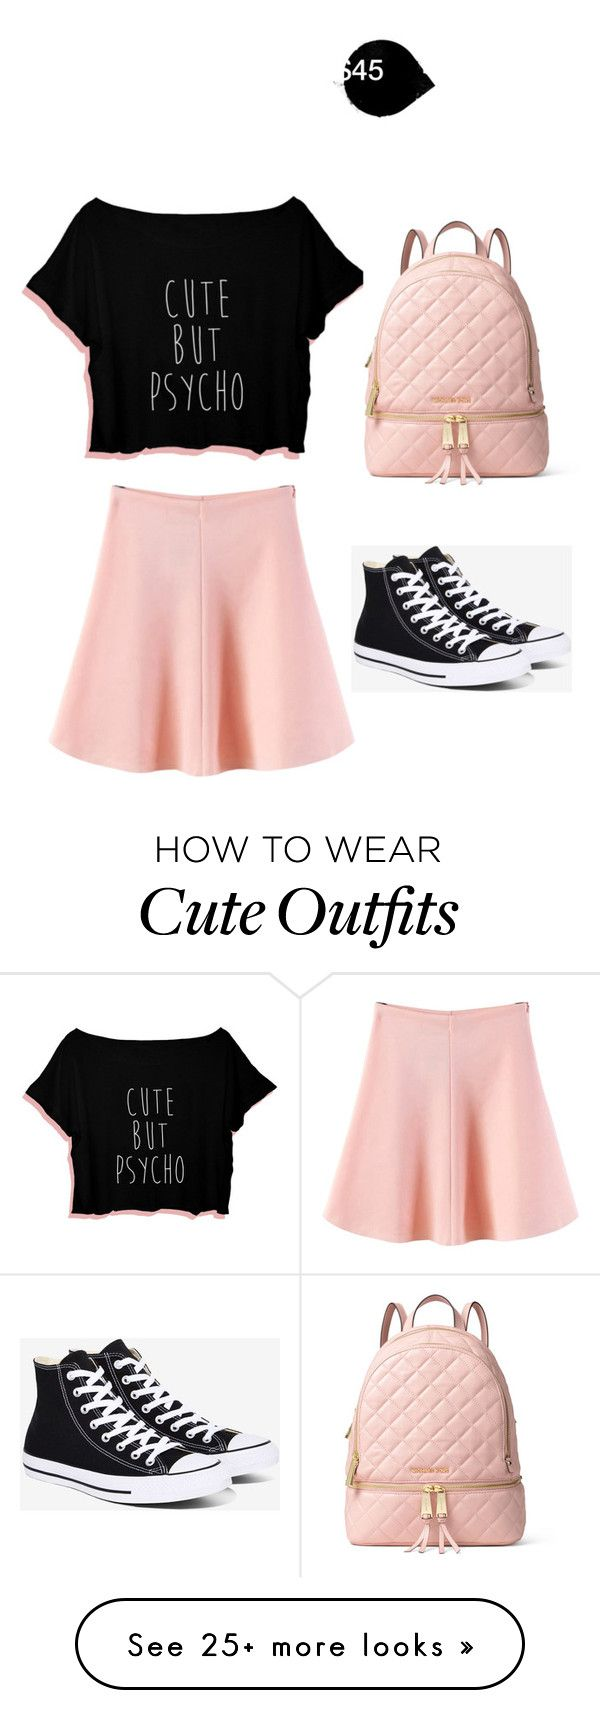 0d21175ba1ec My First Polyvore Outfit by rileylowe226 on Polyvore featuring WithChic,  Converse and MICHAEL Michael Kors